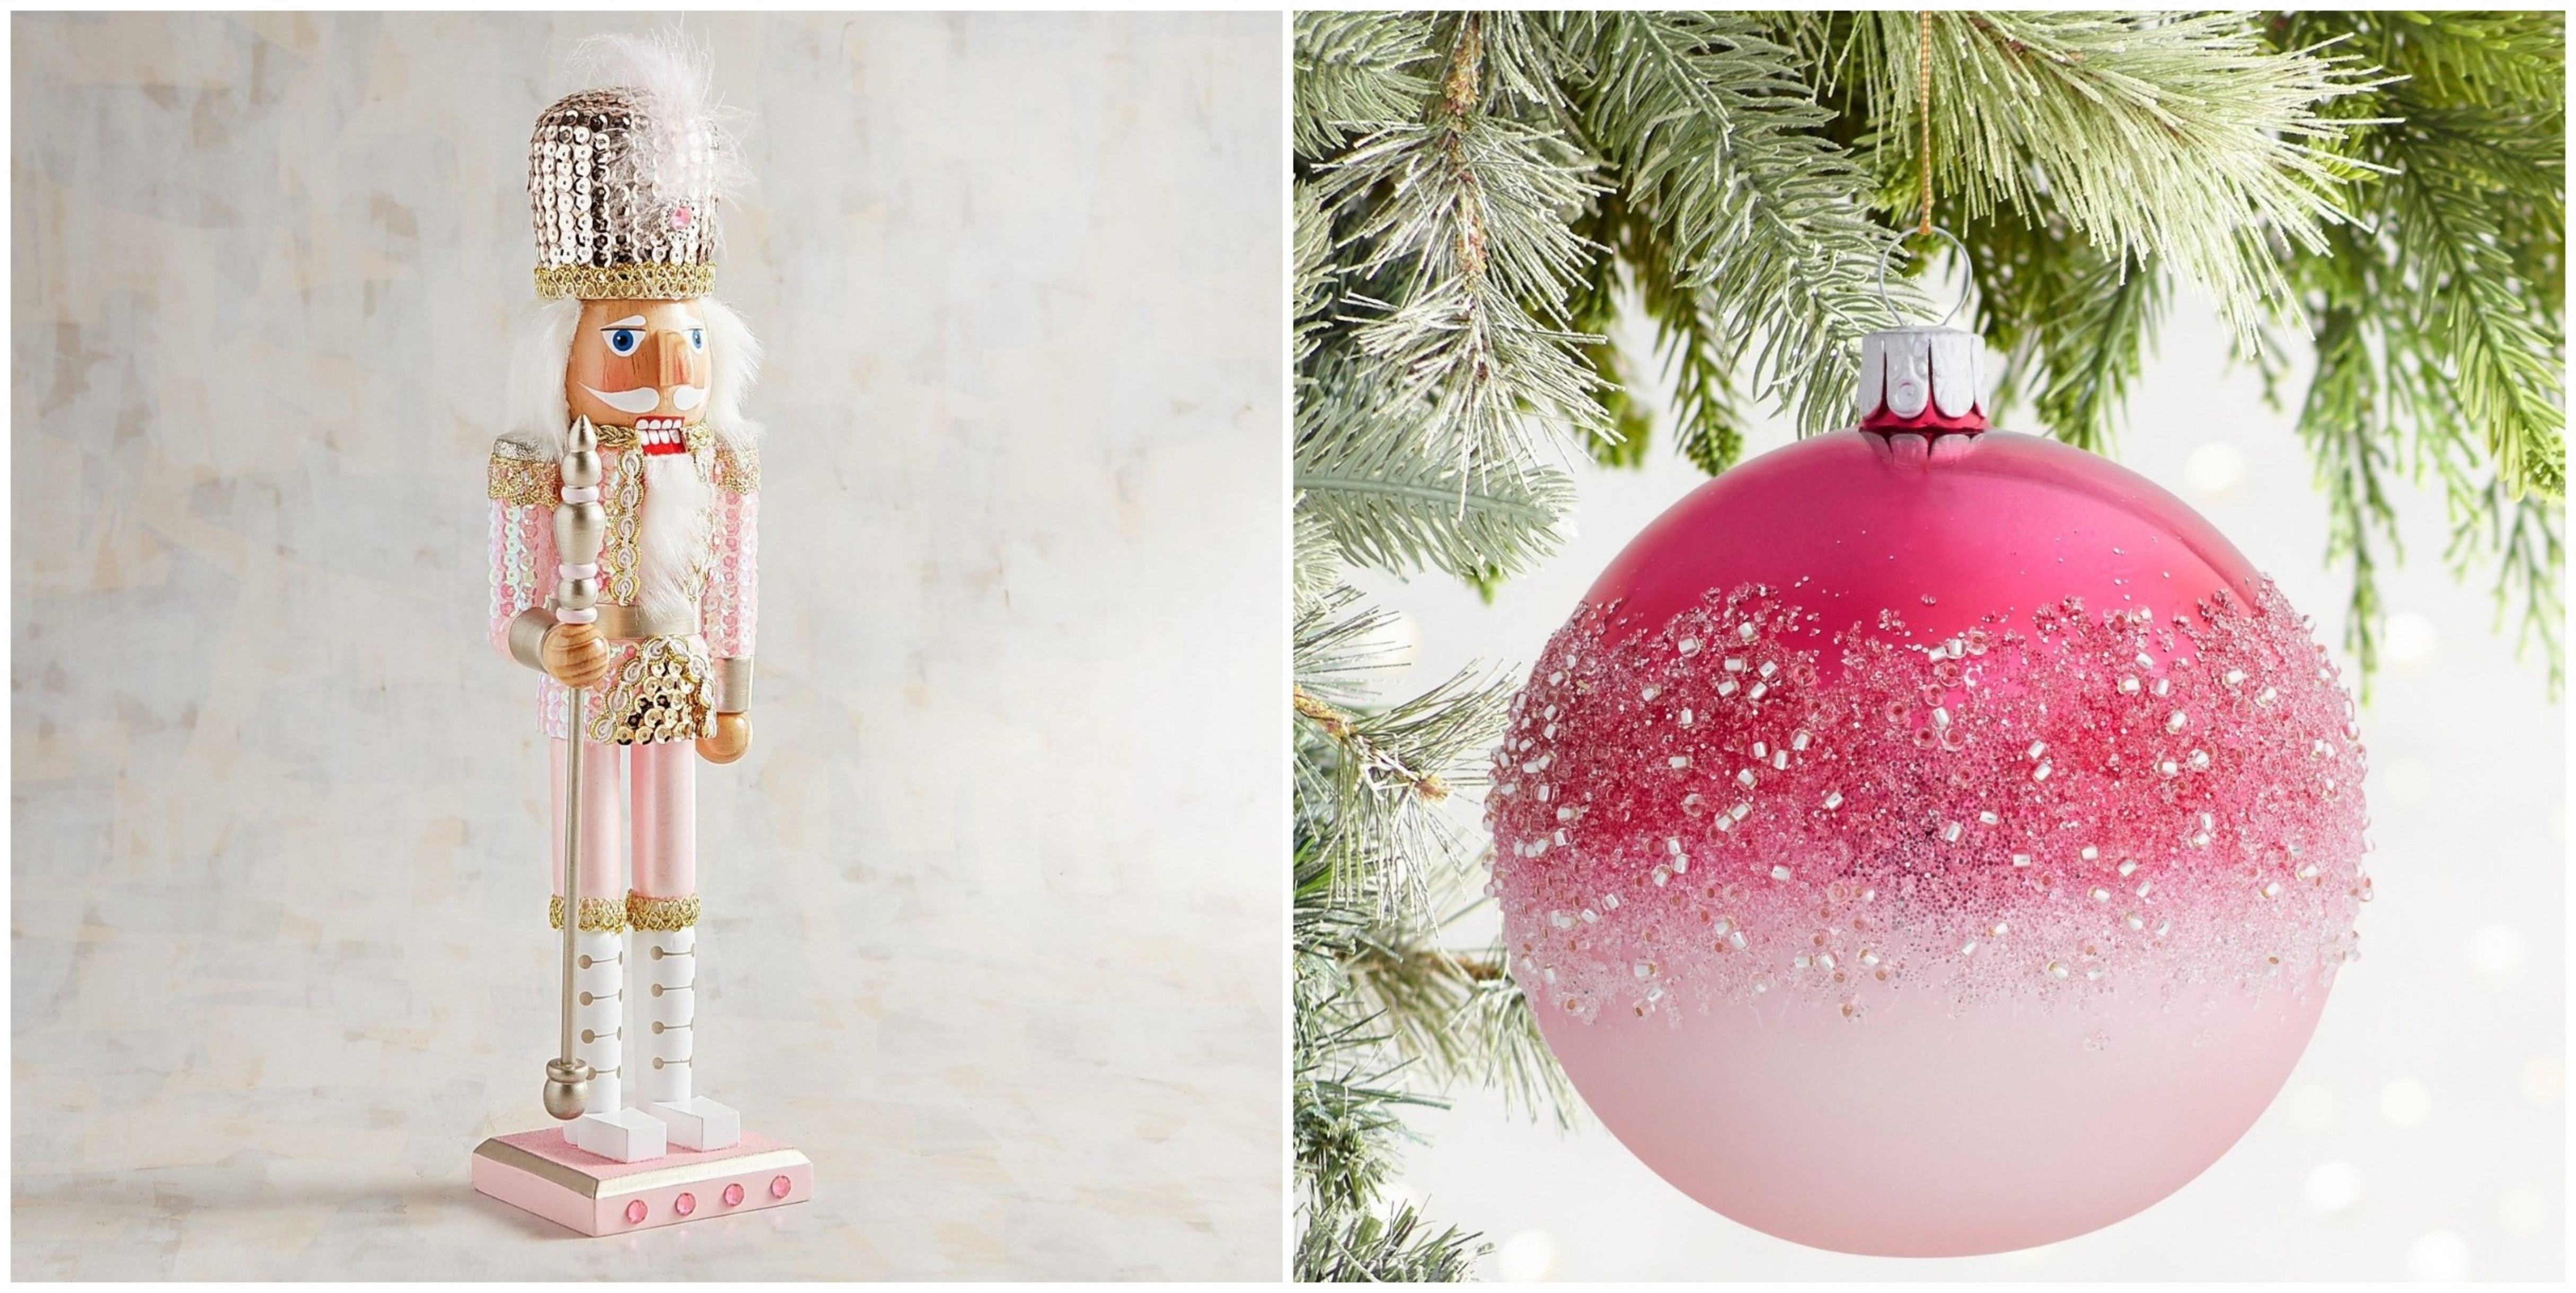 Pier 1 Christmas Ornaments.Pier 1 S Millennial Pink Holiday Decorations Are An